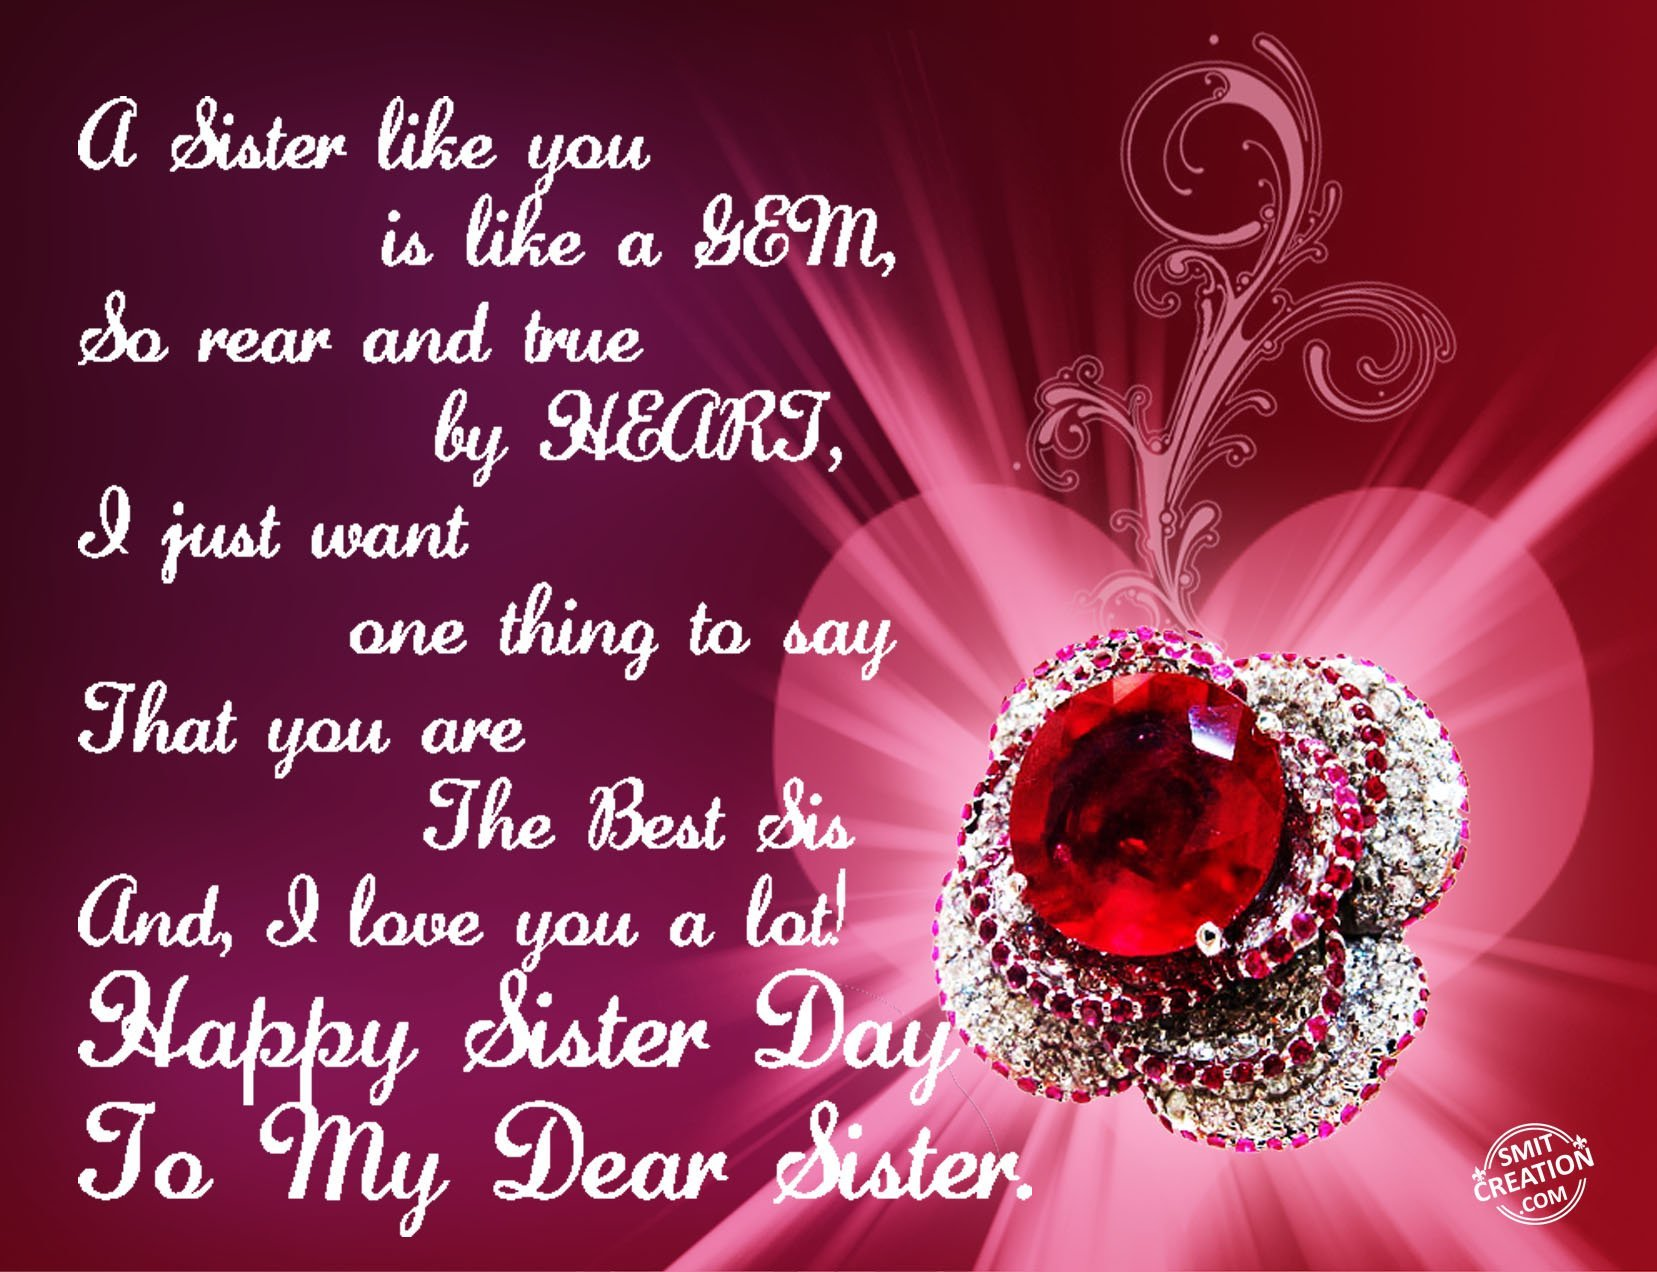 Happy Sister Day To My Dear Sister Smitcreation